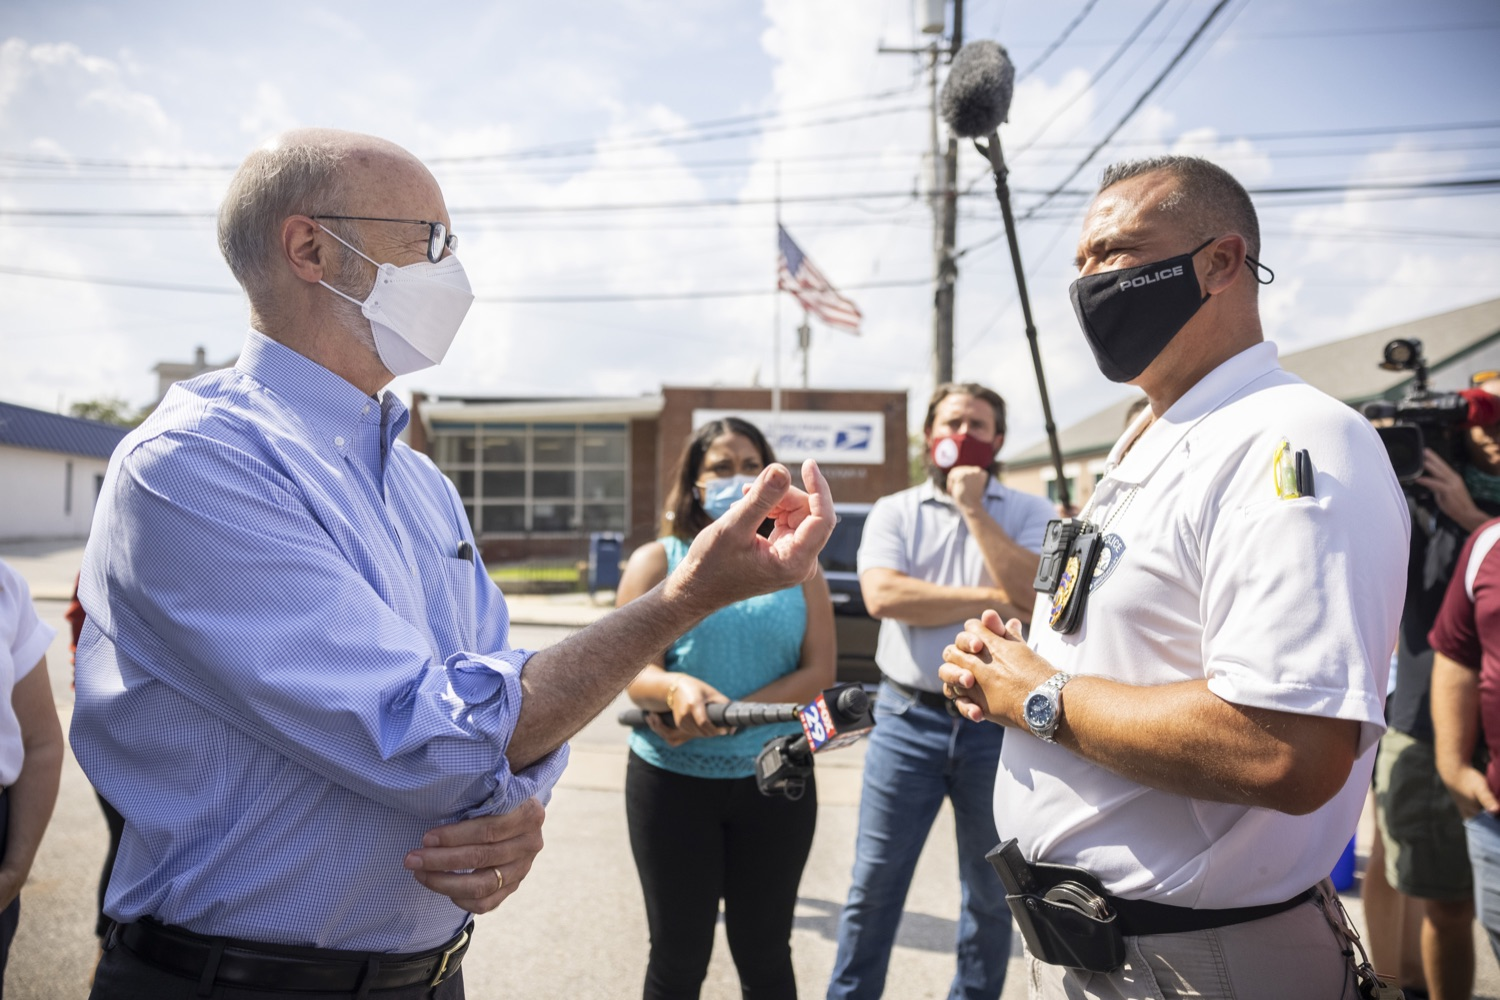 """<a href=""""https://filesource.wostreaming.net/commonwealthofpa/photo/19109_gov_stormDamage_dz_005.jpg"""" target=""""_blank"""">⇣Download Photo<br></a>Pennsylvania Governor Tom Wolf touring storm damage with Chief Todd J. Bereda,  Chief of Police, Emergency Management Coordinator Bridgeport PA.   , Governor Wolf visited the Borough of Bridgeport to tour some of the areas affected by the remnants of Ida. The governor, joined by local officials, viewed and discussed the impact to damaged areas, including businesses, homes and infrastructure. Bridgeport, PA - September 08, 2021"""